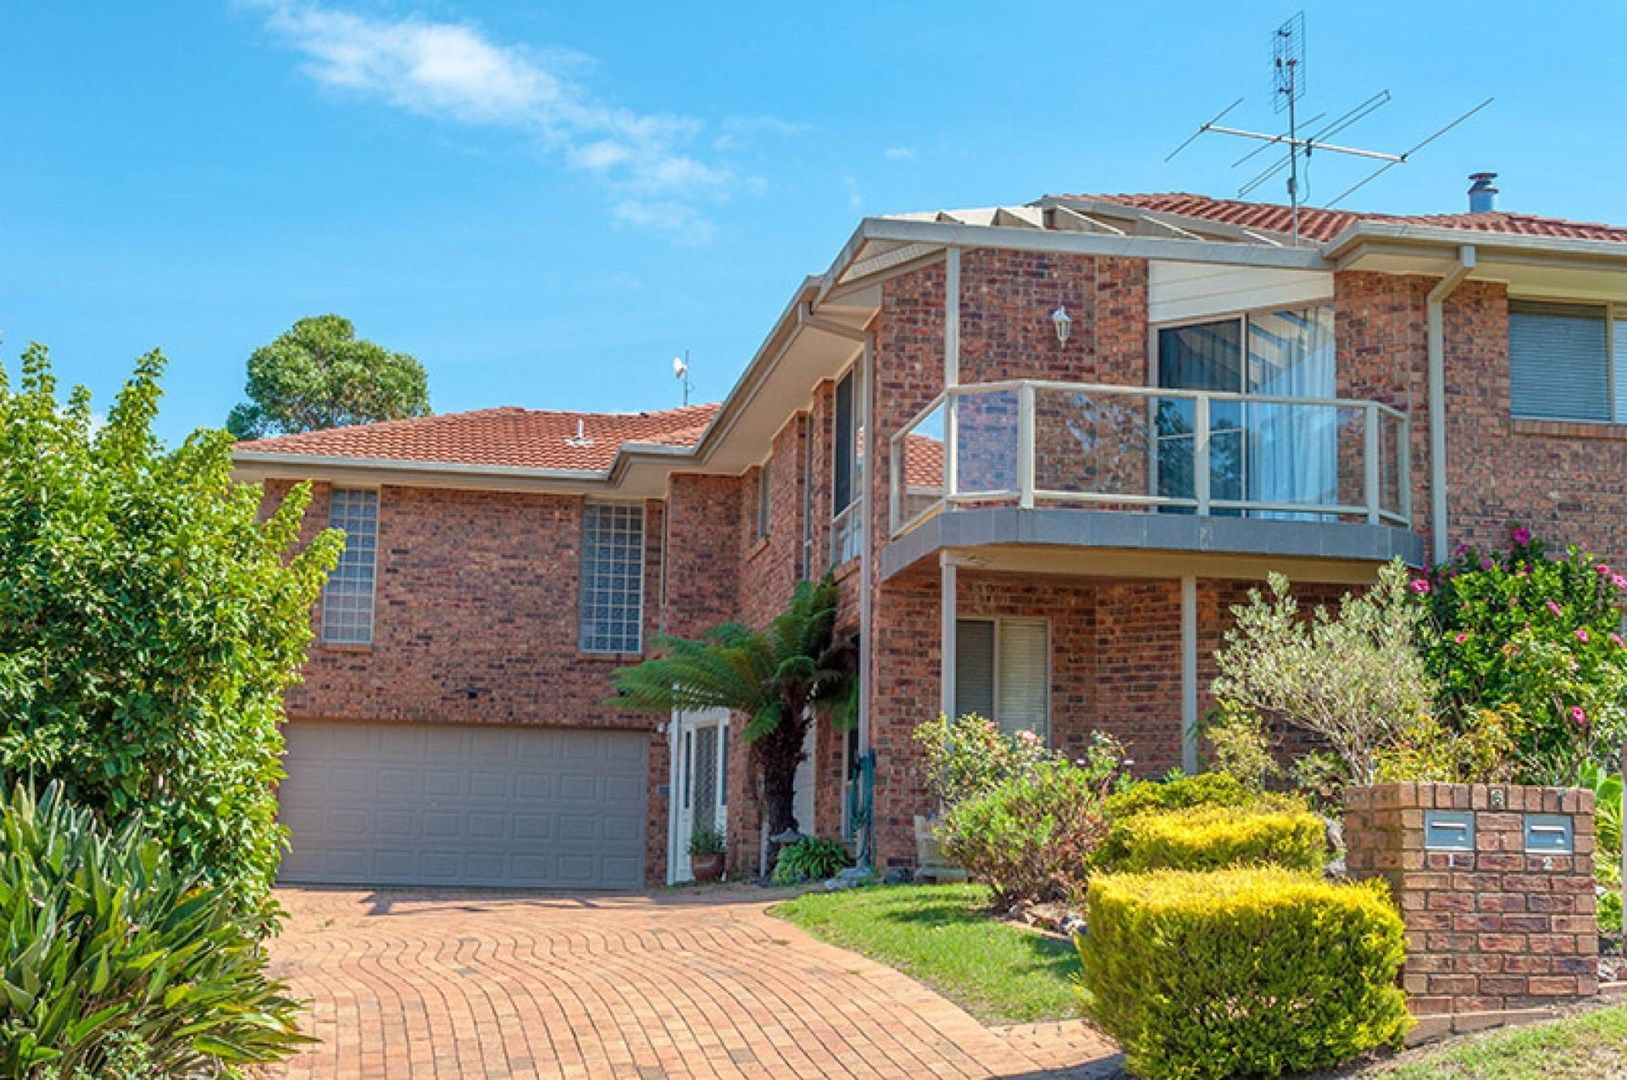 2/6 Tern Close, Merimbula NSW 2548, Image 0